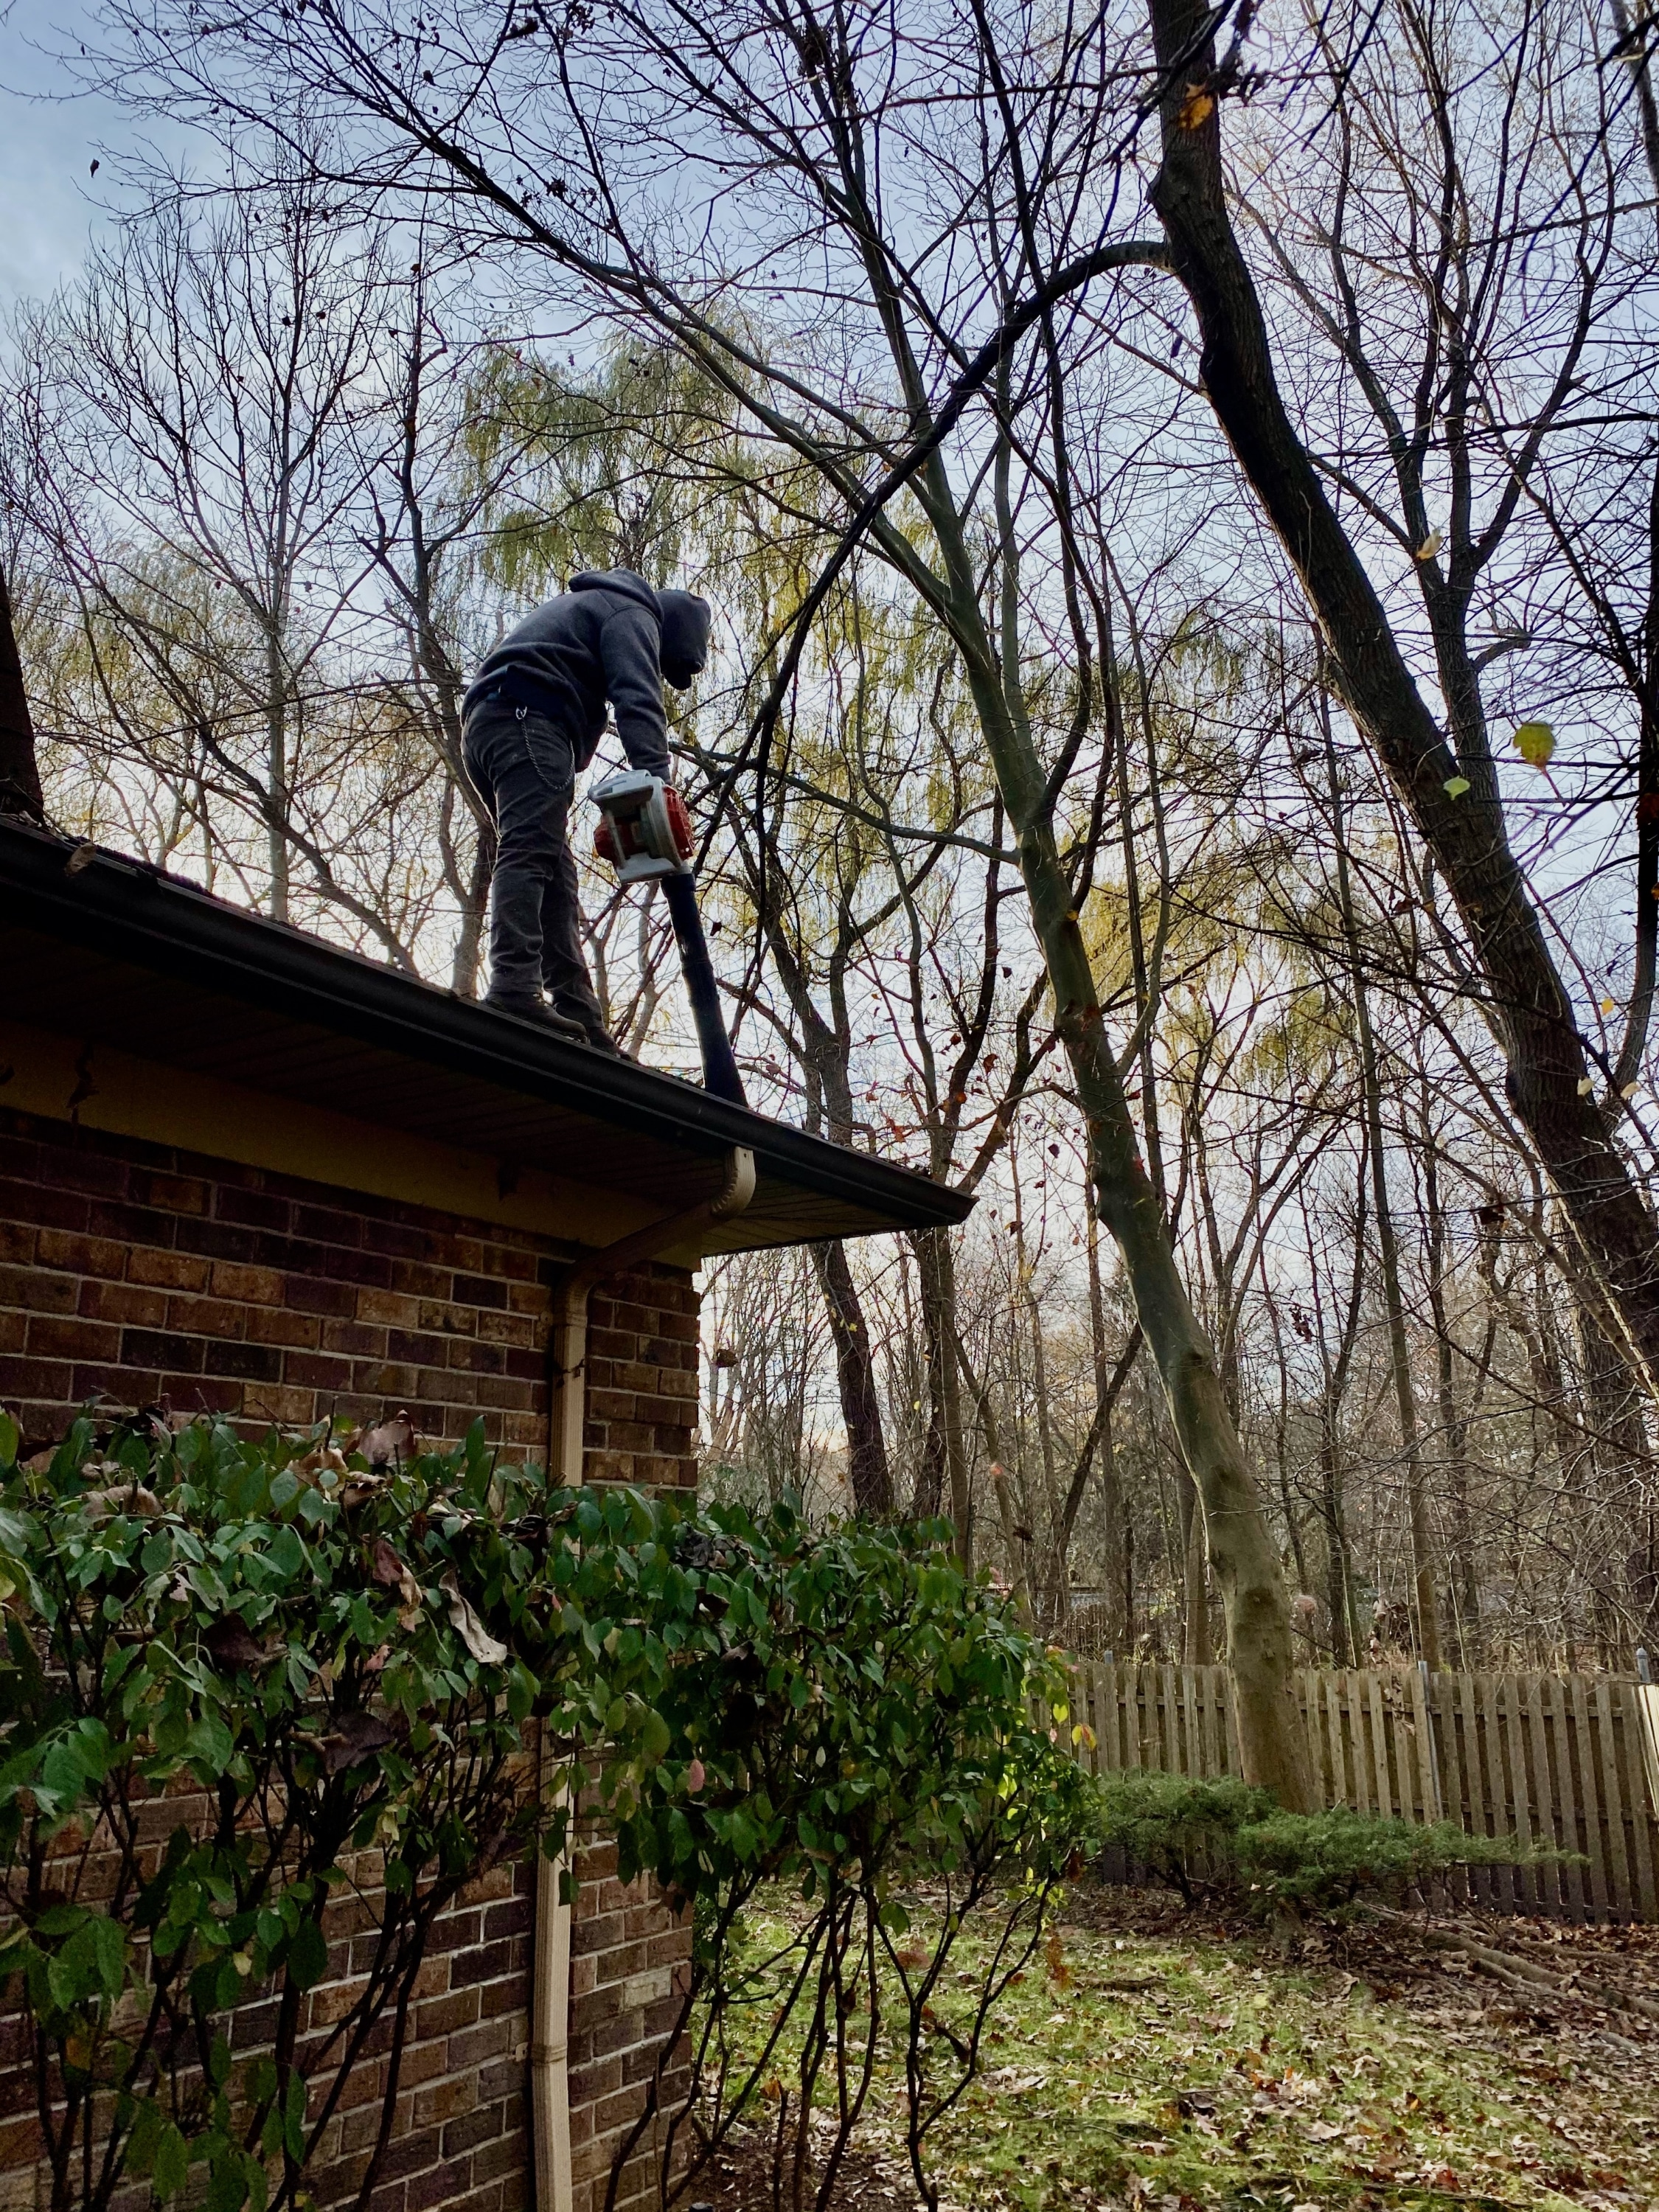 gutter cleaning in ramsey nj by superior seamless gutters